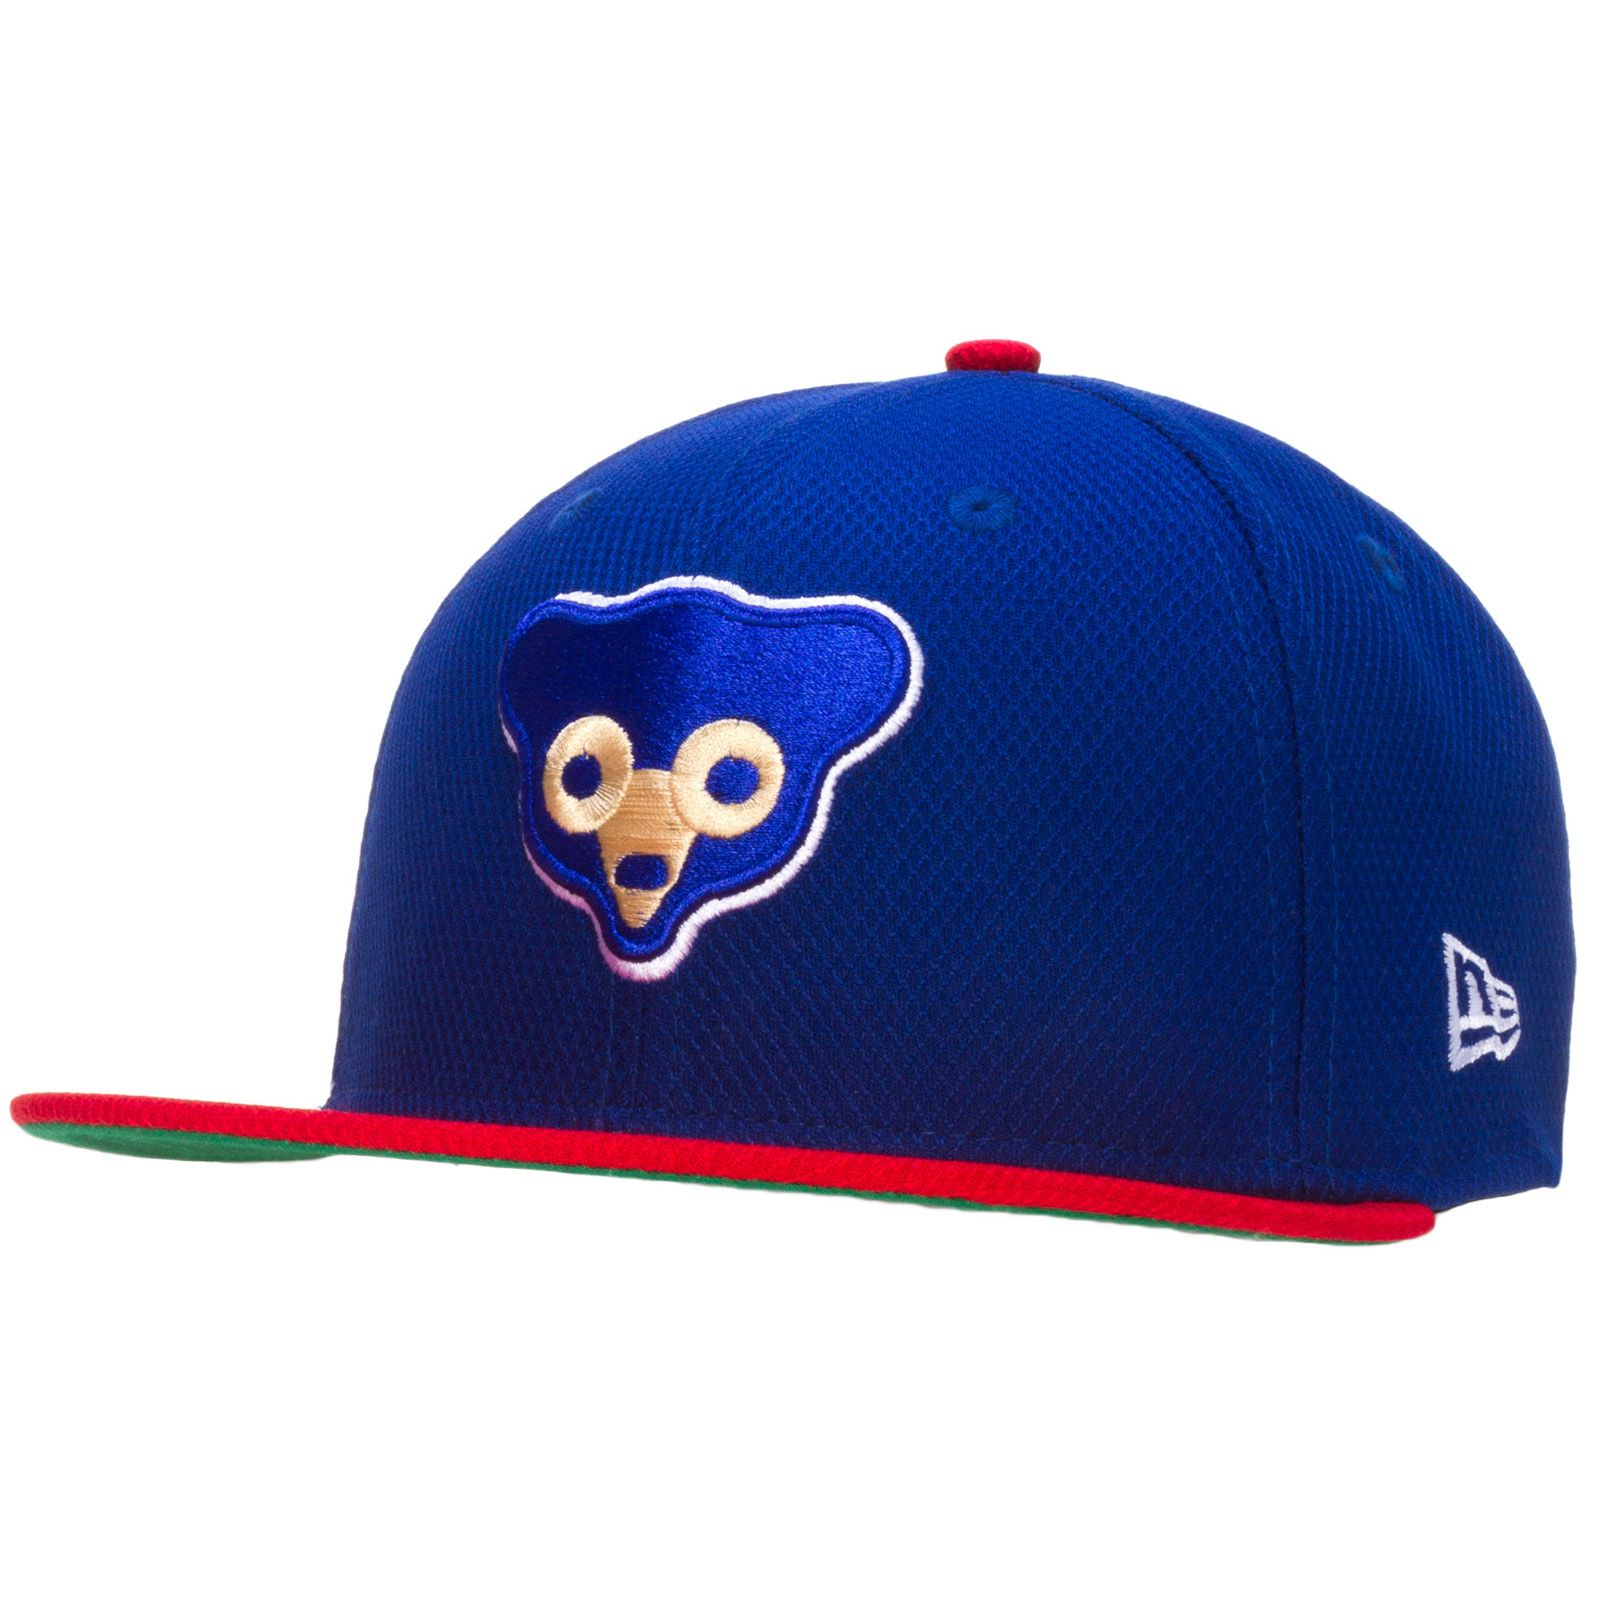 finest selection df523 8fb90 Chicago Cubs Royal Blue Extra Large Crawl Bear Logo Fitted Flat Bill Hat by  New Era  Chicago  ChicagoCubs  Cubs   Cubs Hats   Chicago cubs fans, ...